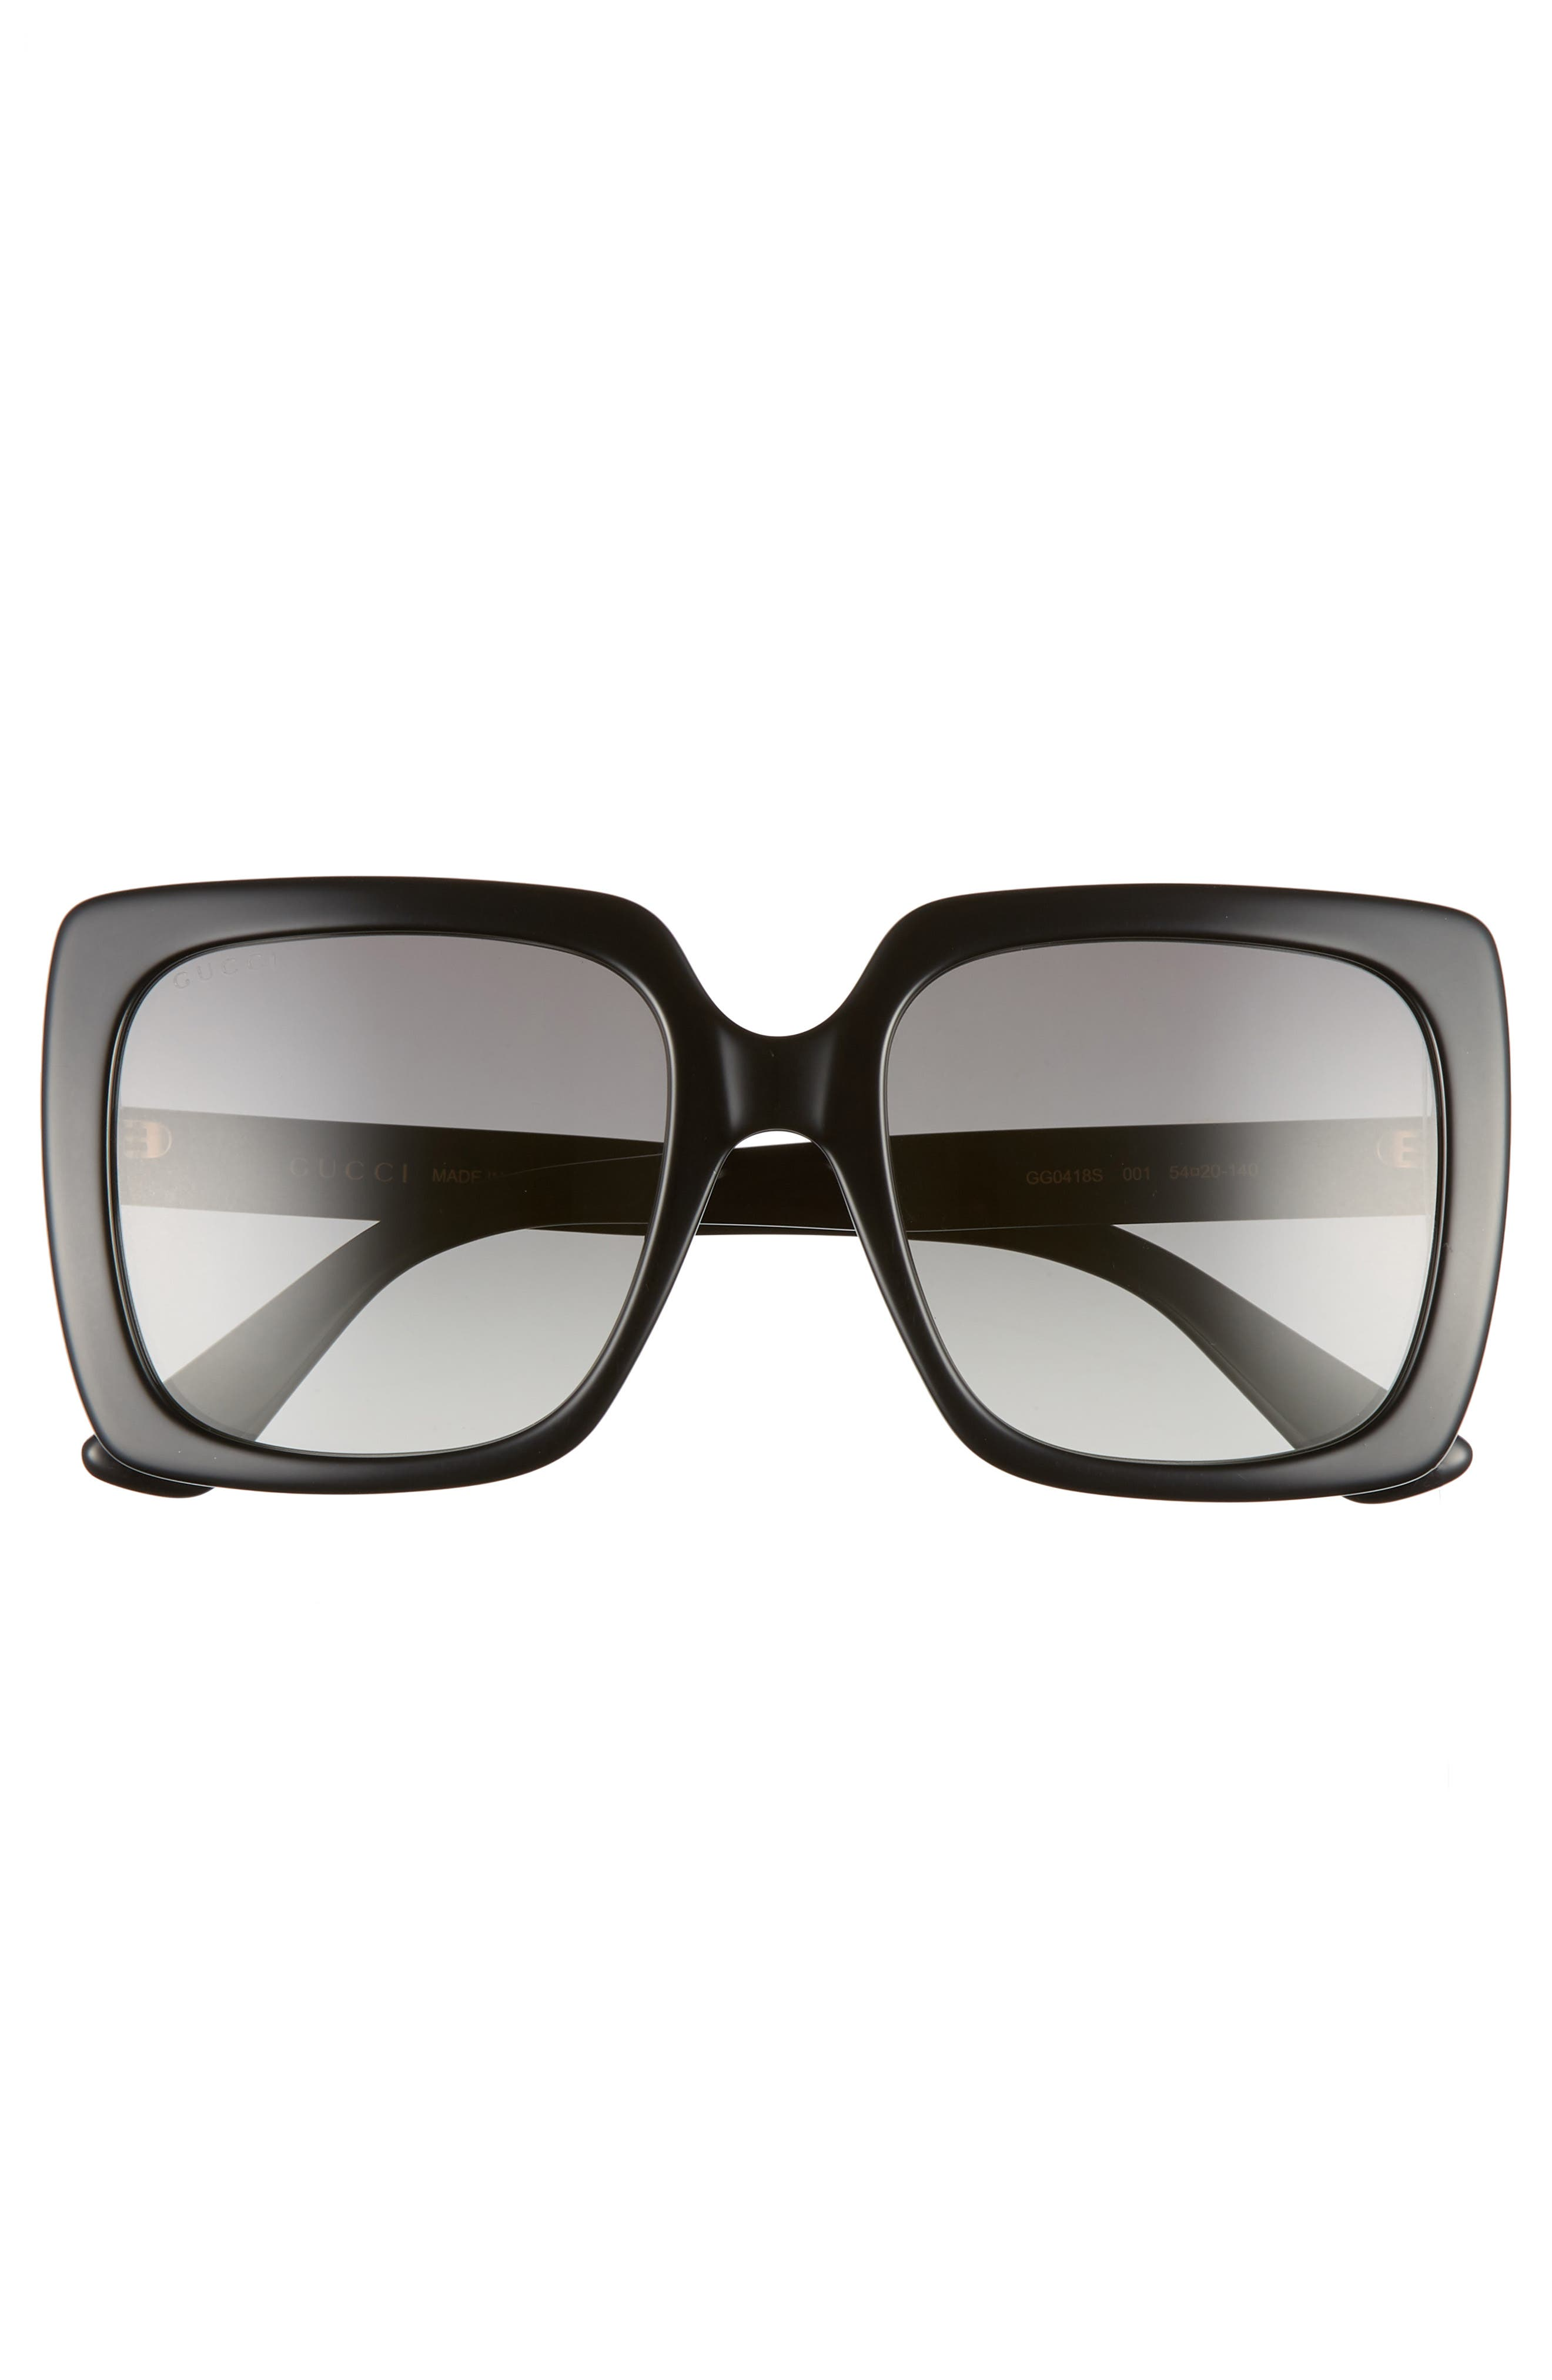 GUCCI,                             54mm Gradient Square Sunglasses,                             Alternate thumbnail 3, color,                             BLACK/ CRYSTAL/ GREY GRADIENT